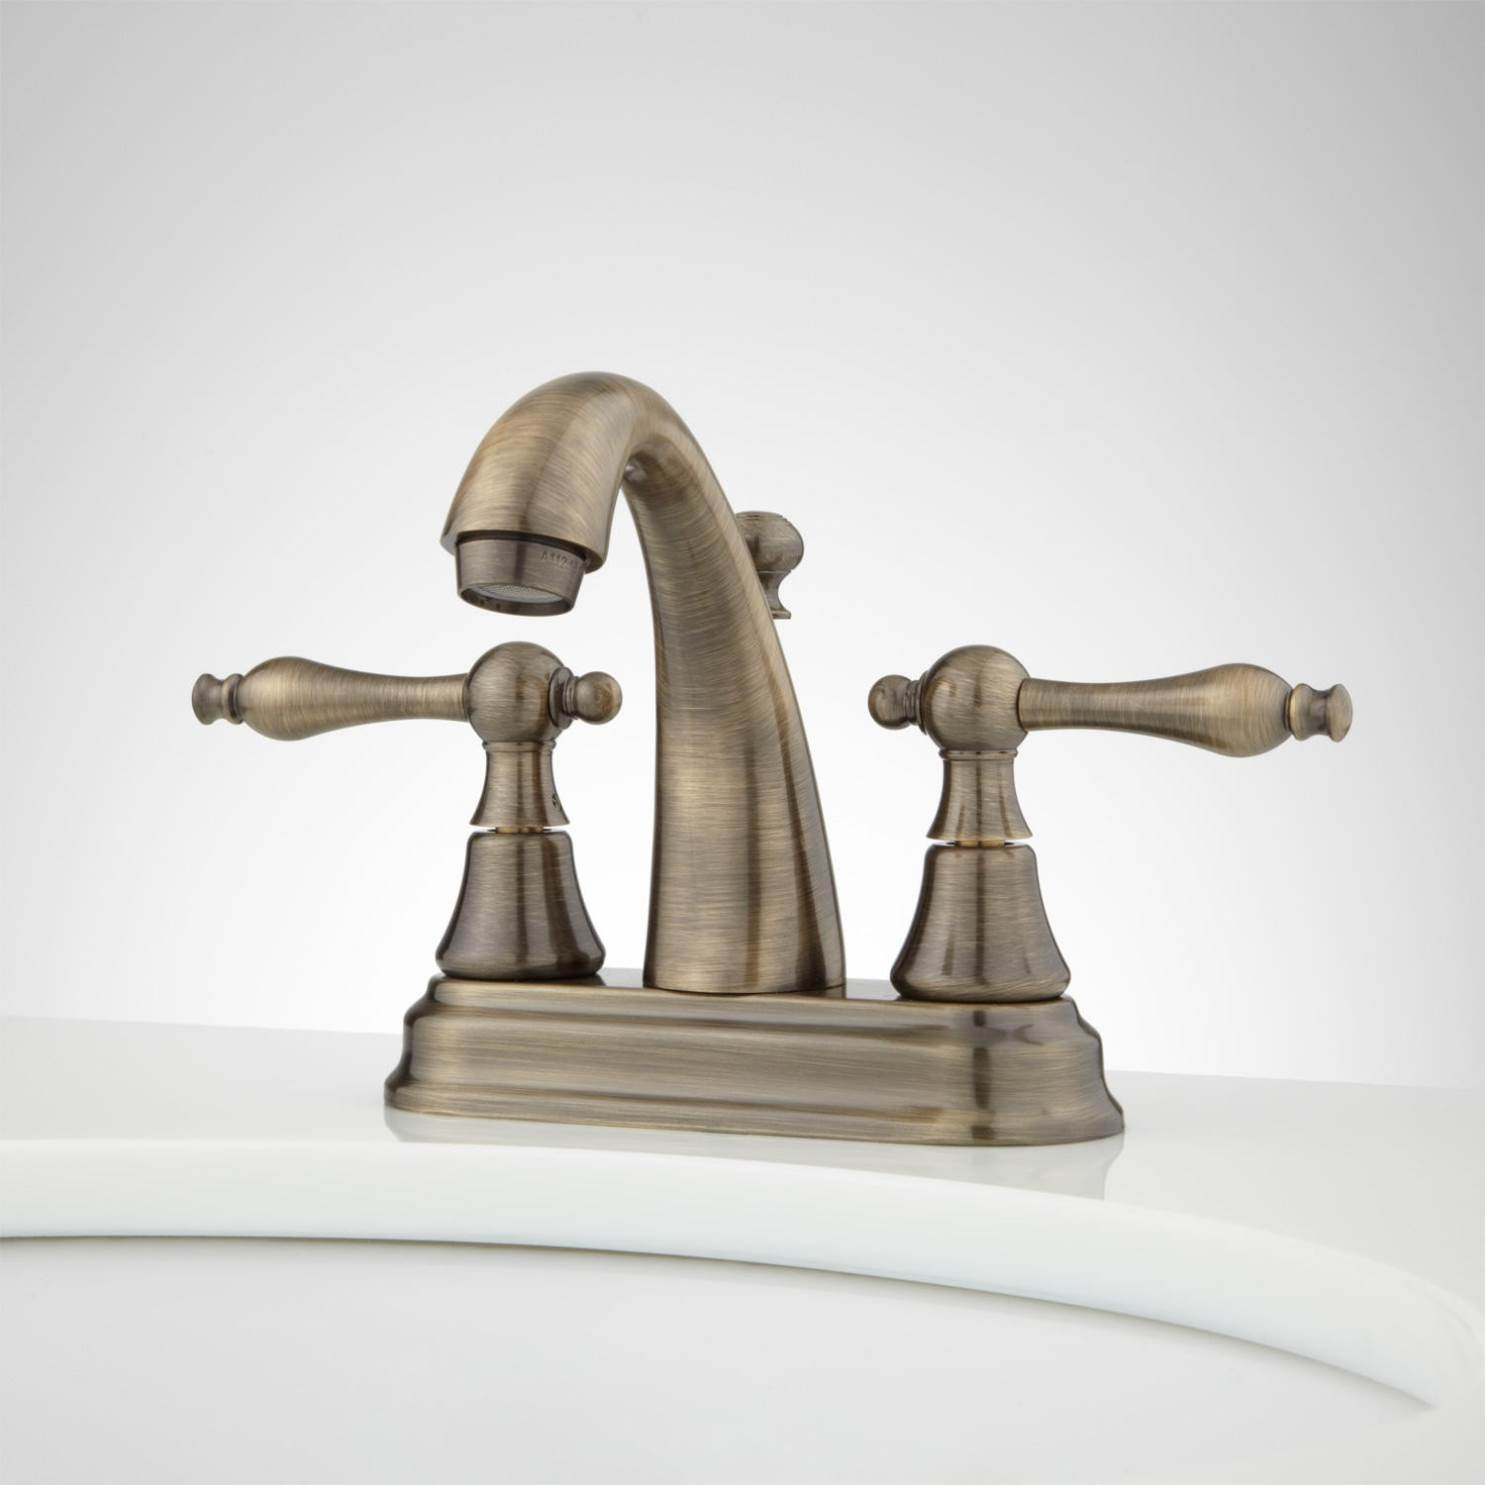 Ideas, antique brass bathroom faucets centerset antique brass bathroom faucets centerset easy tips to revamp antique brass bathroom faucet ideas free 1485 x 1485  .